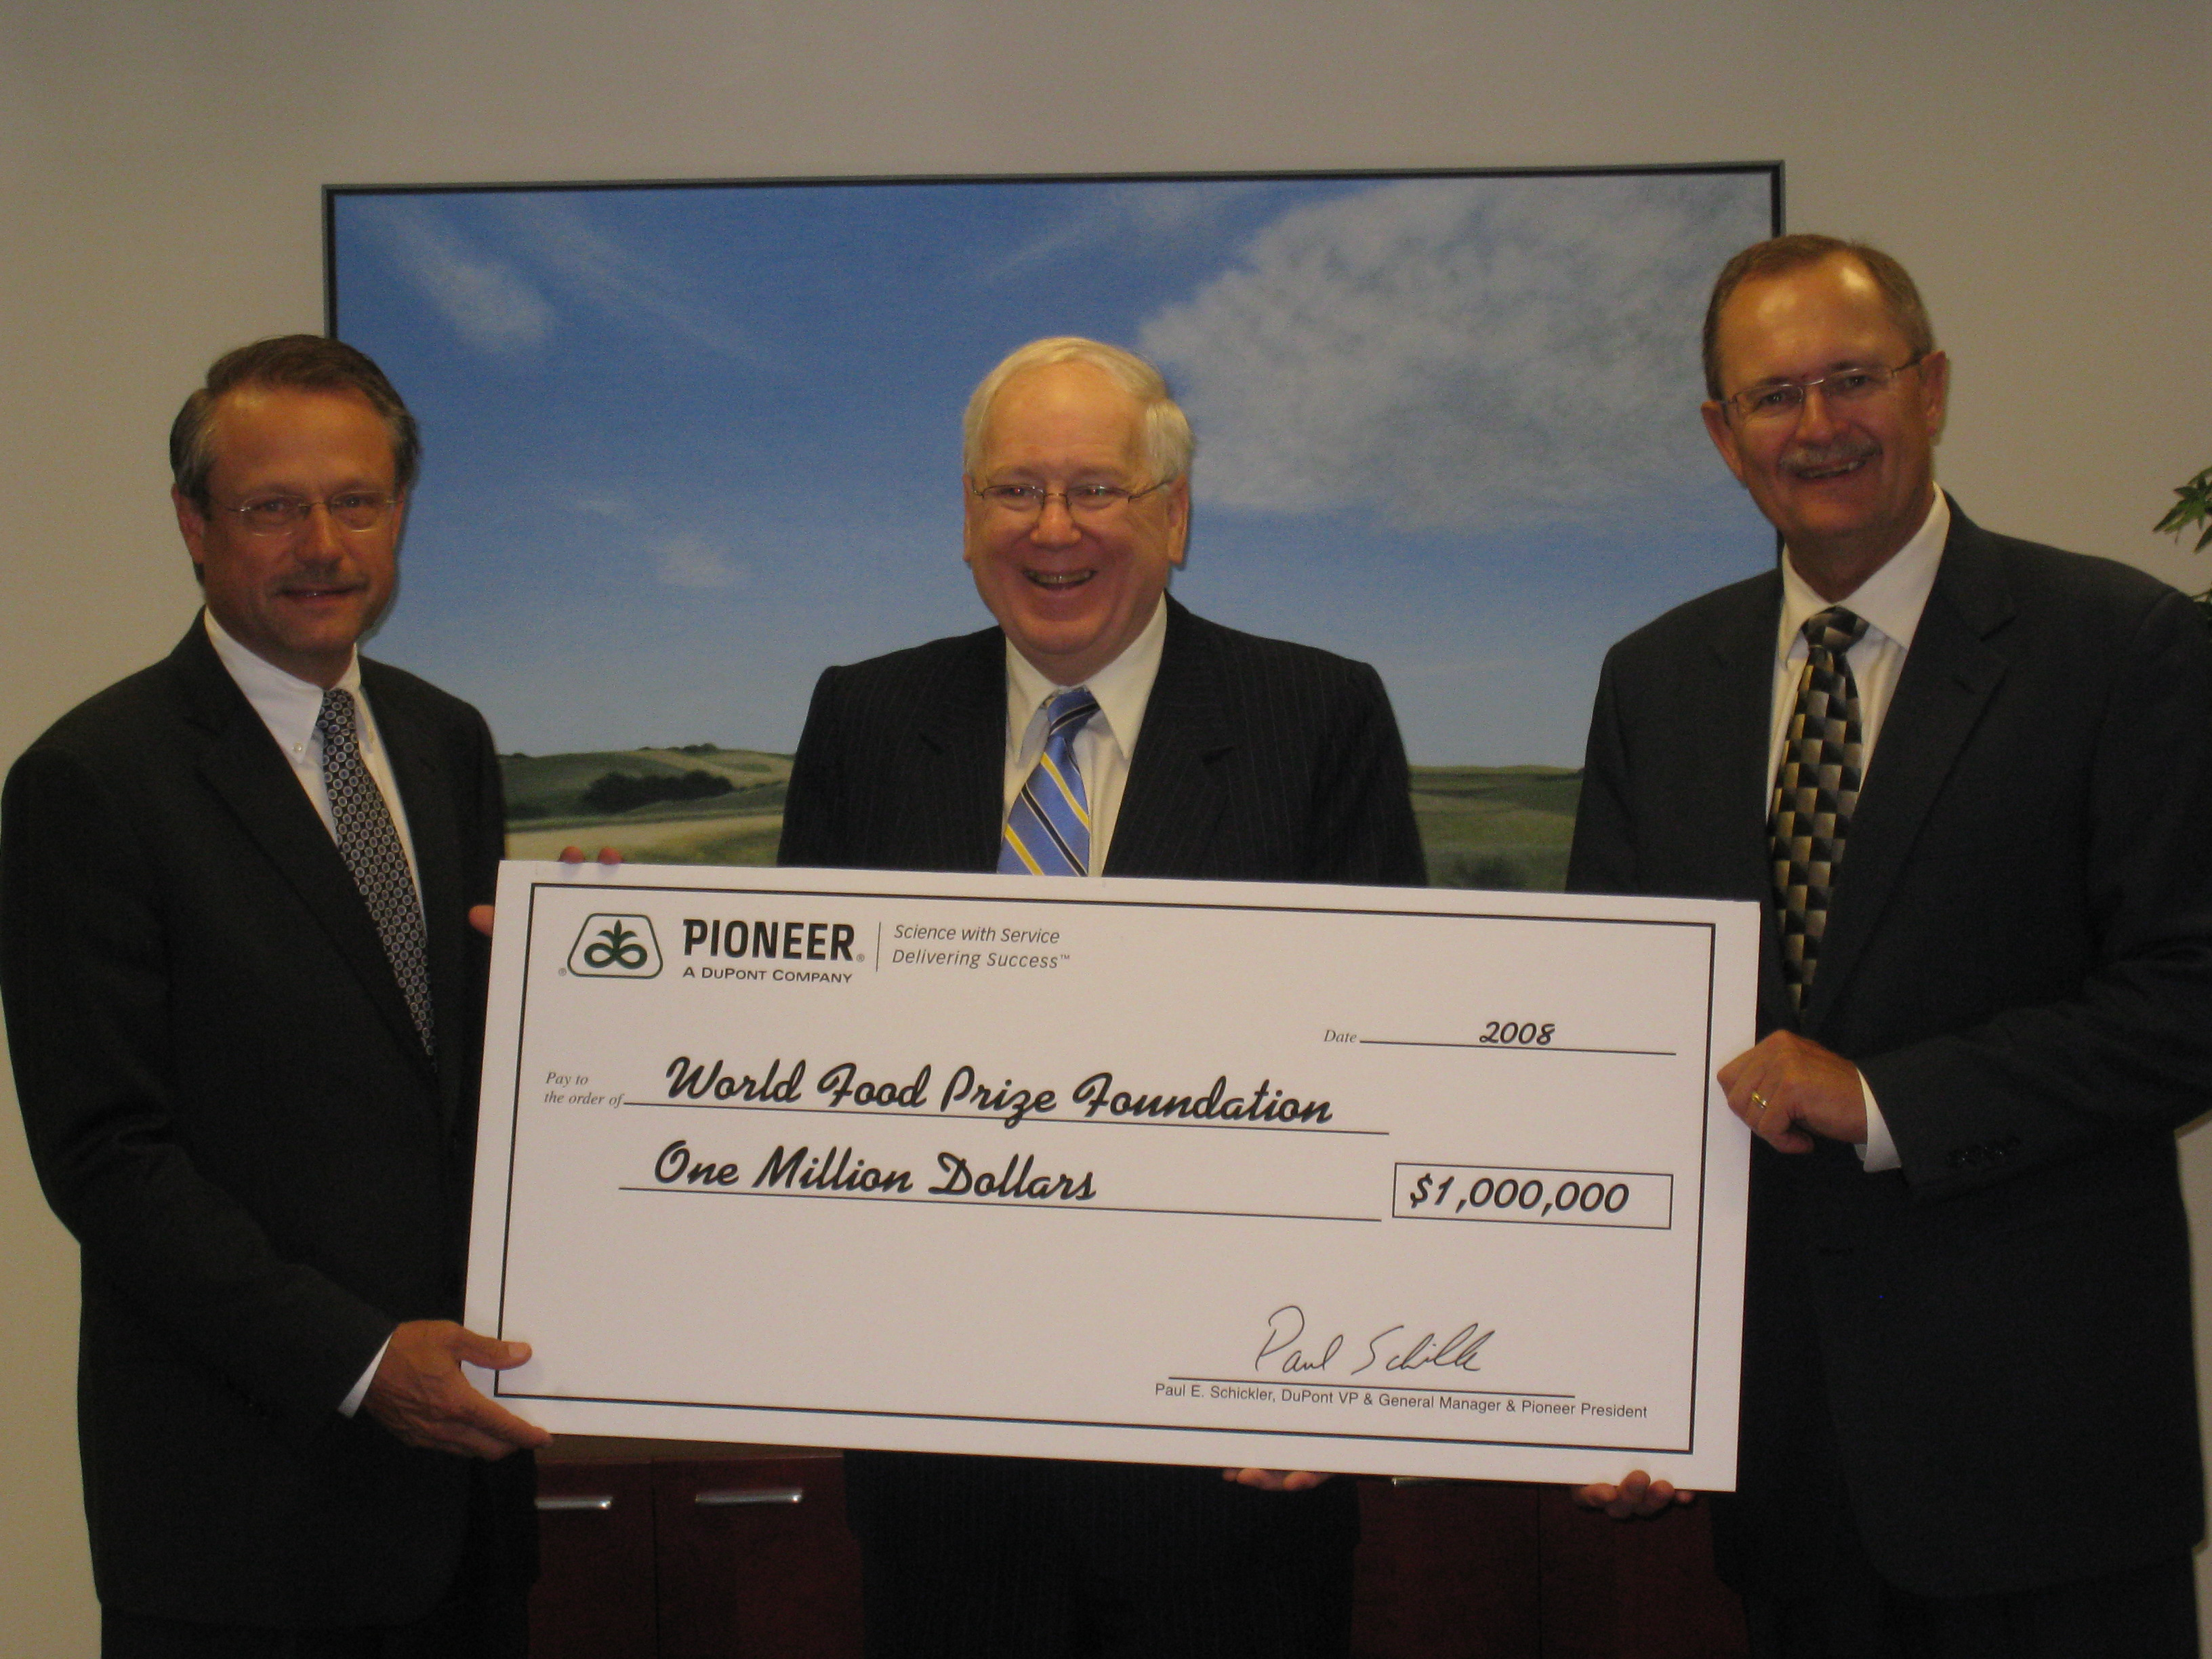 Pioneer Check for the World Food Prize